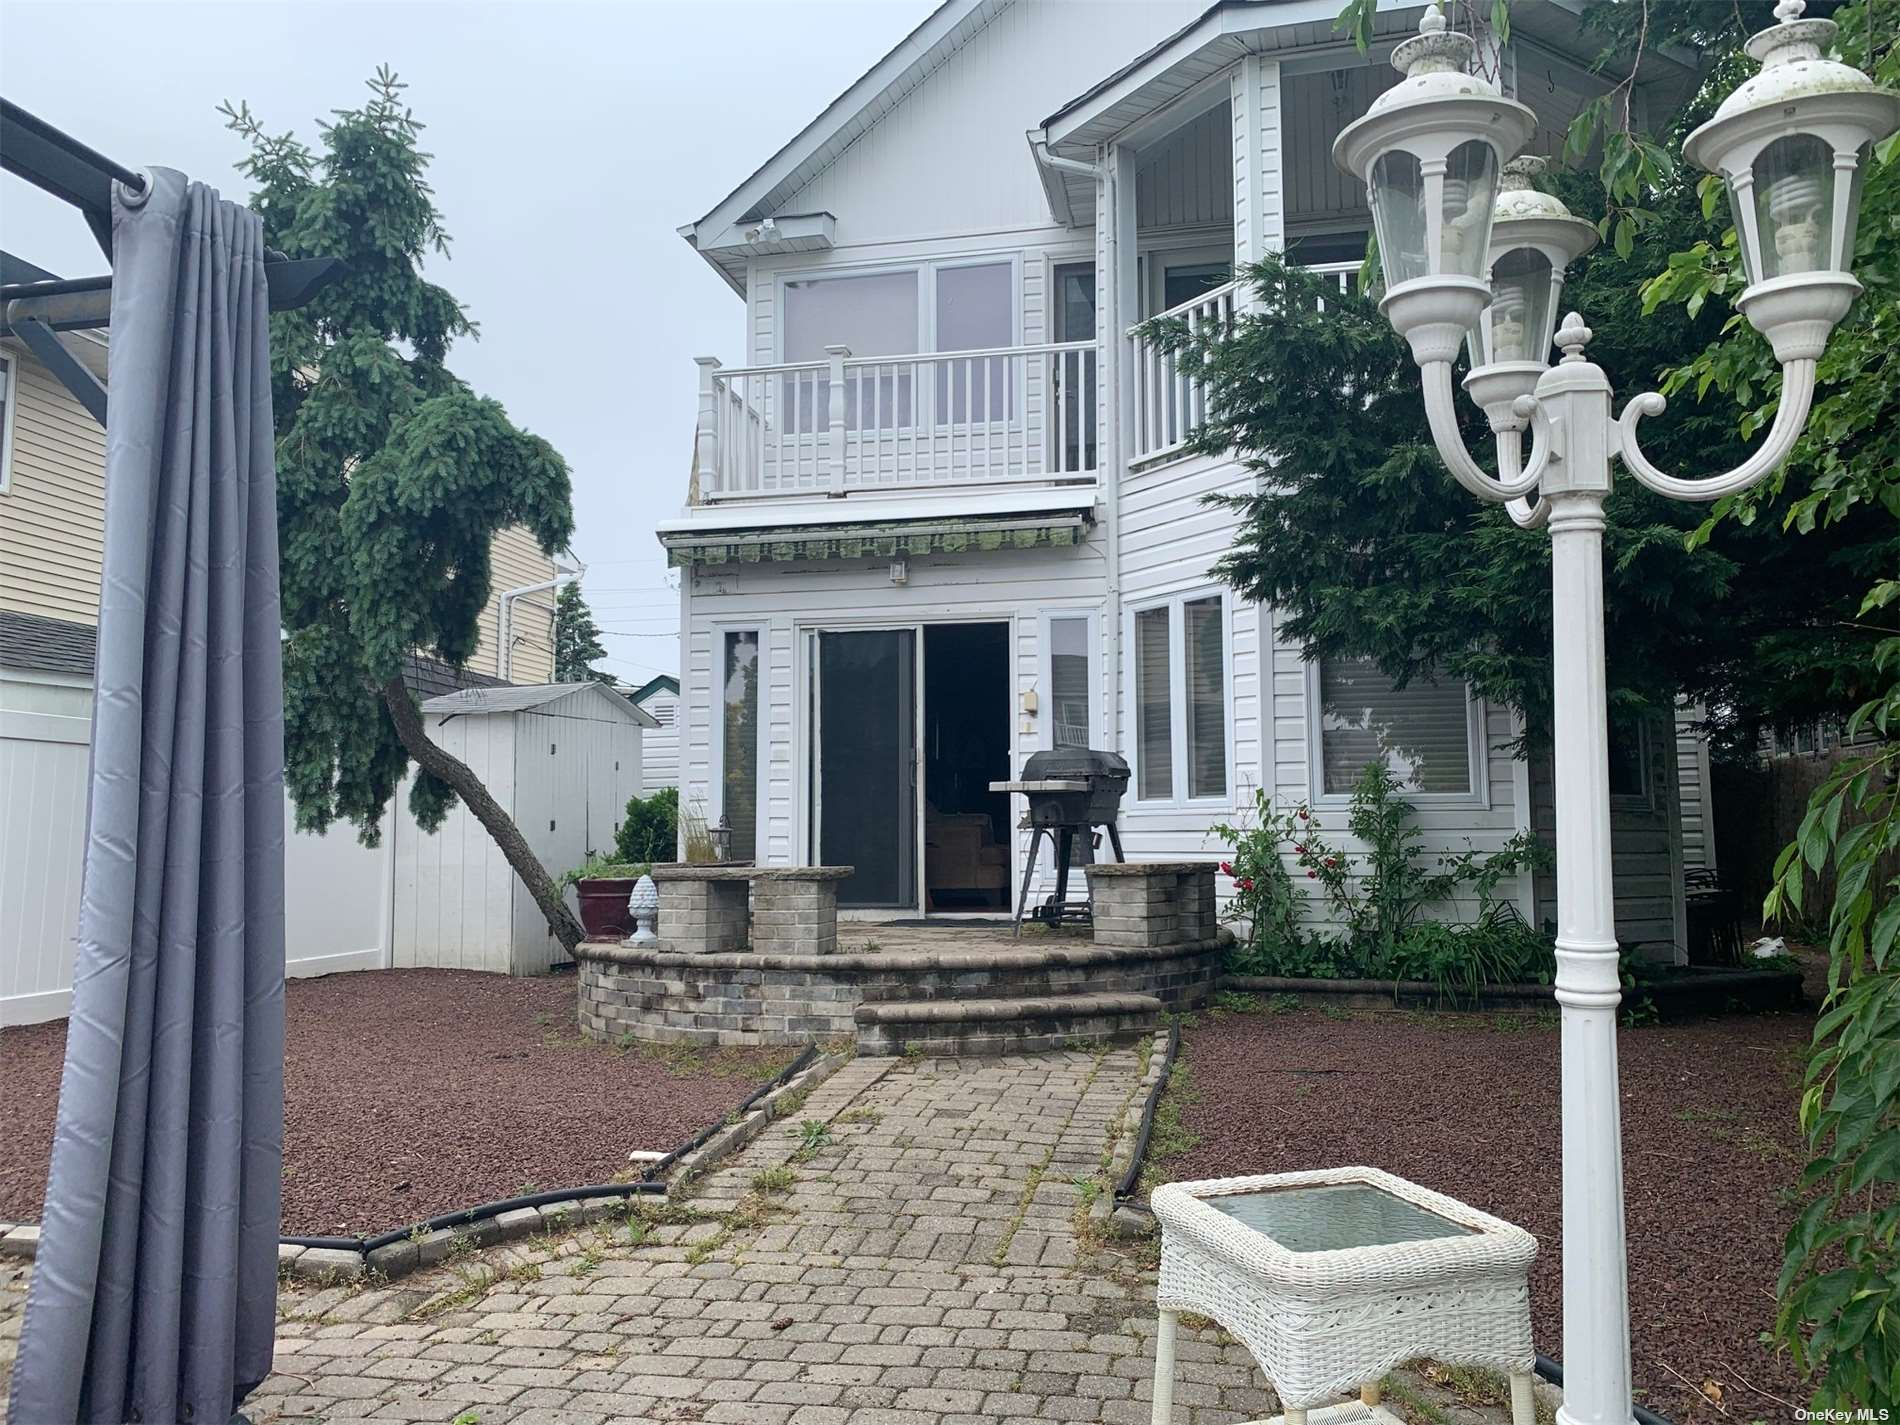 Canal property. Perfect boaters house. Master bedroom with walk-in closet and balcony overlooking canal. New pex plumbing throughout entire home, new water heater. Walk through attic with lots of storage space. Low maintenance yard, 2 sheds, outside access to utility room.